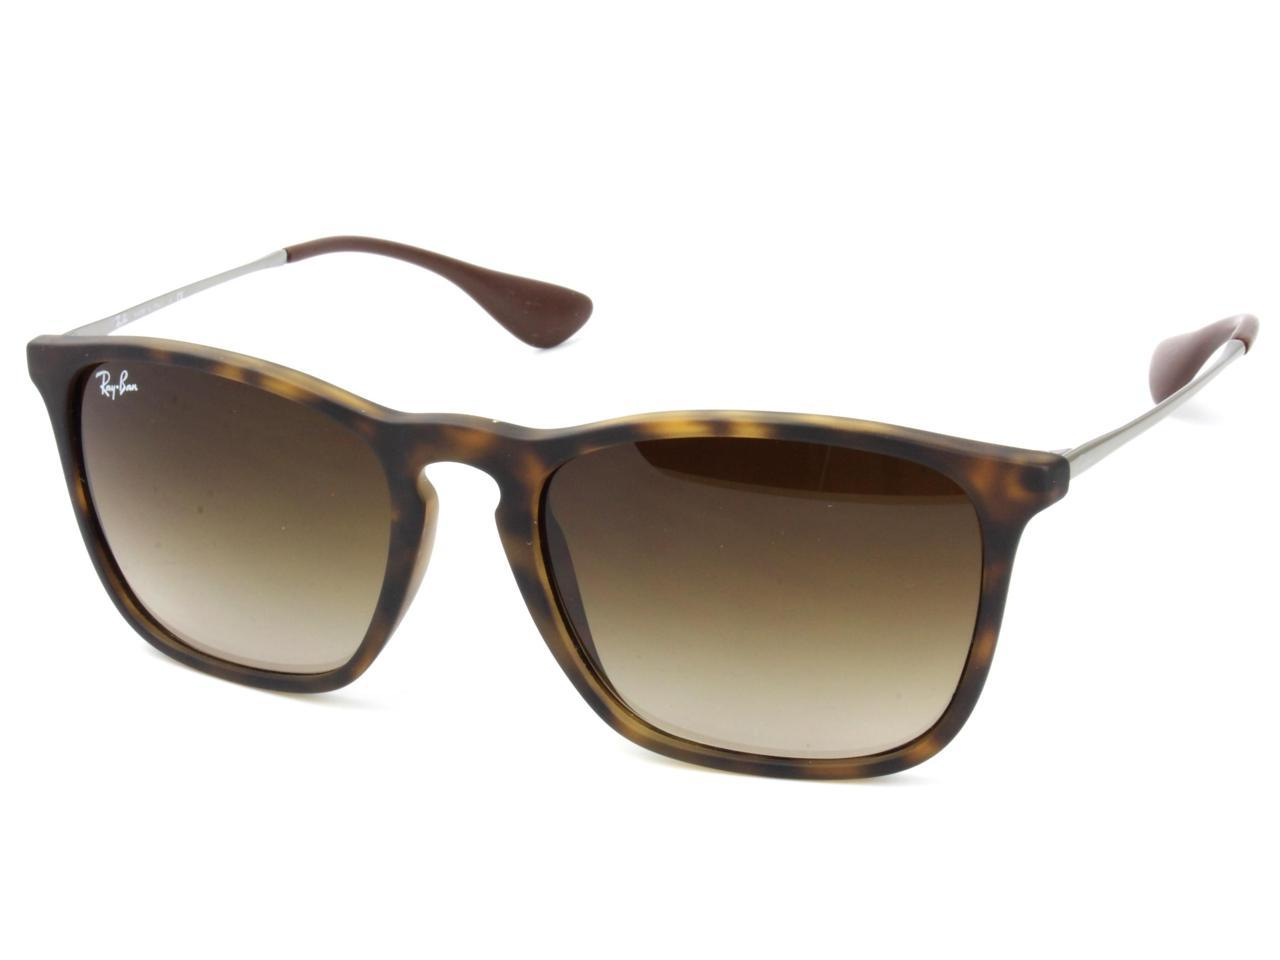 Ray Ban Sunglasses RB 4187 856/13 Havana 54MM